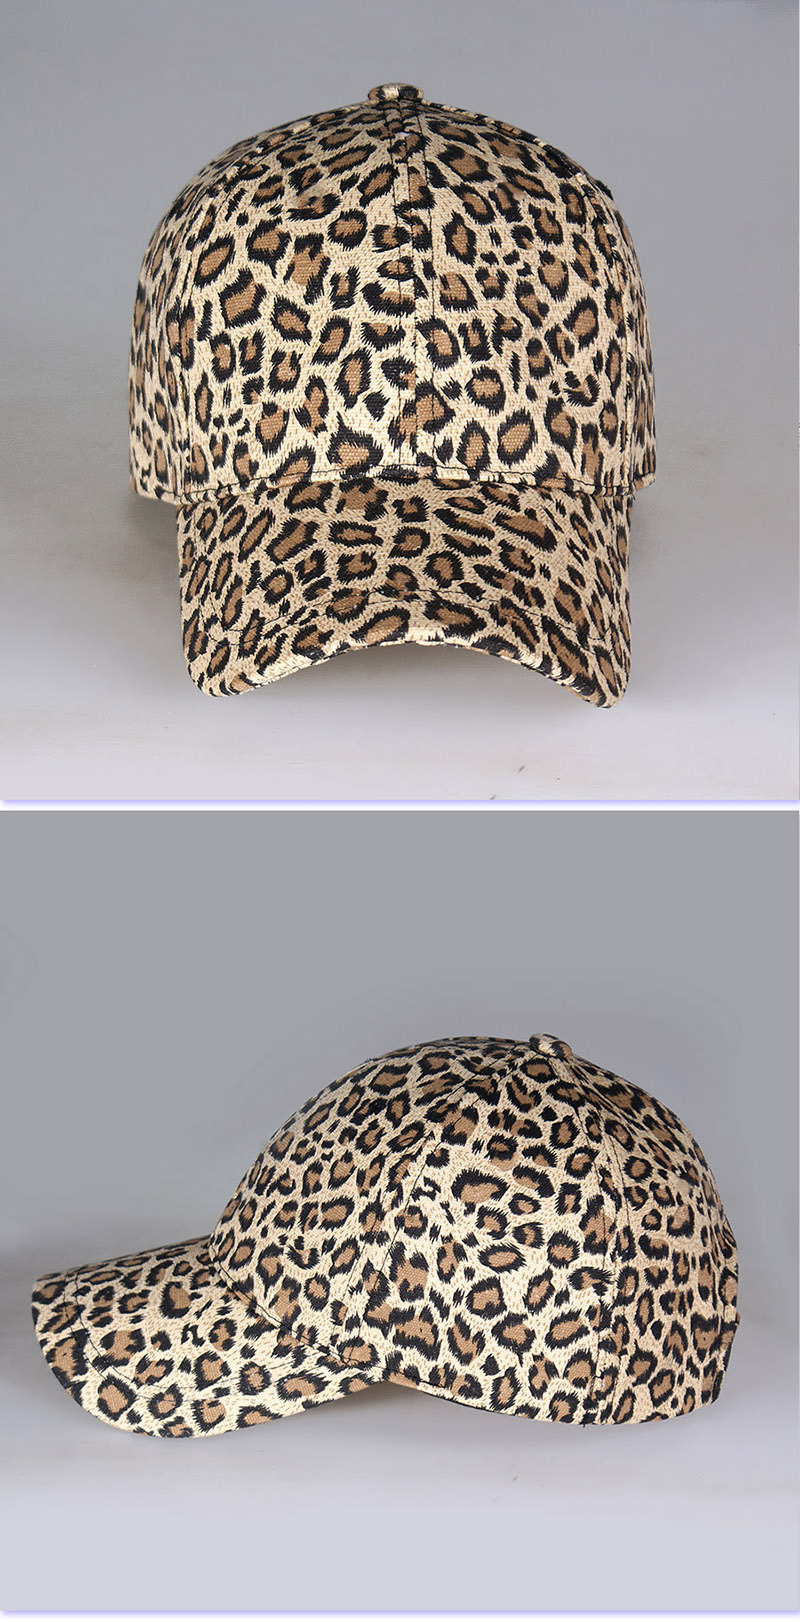 Leopard cap baseball cap man and woman (7)